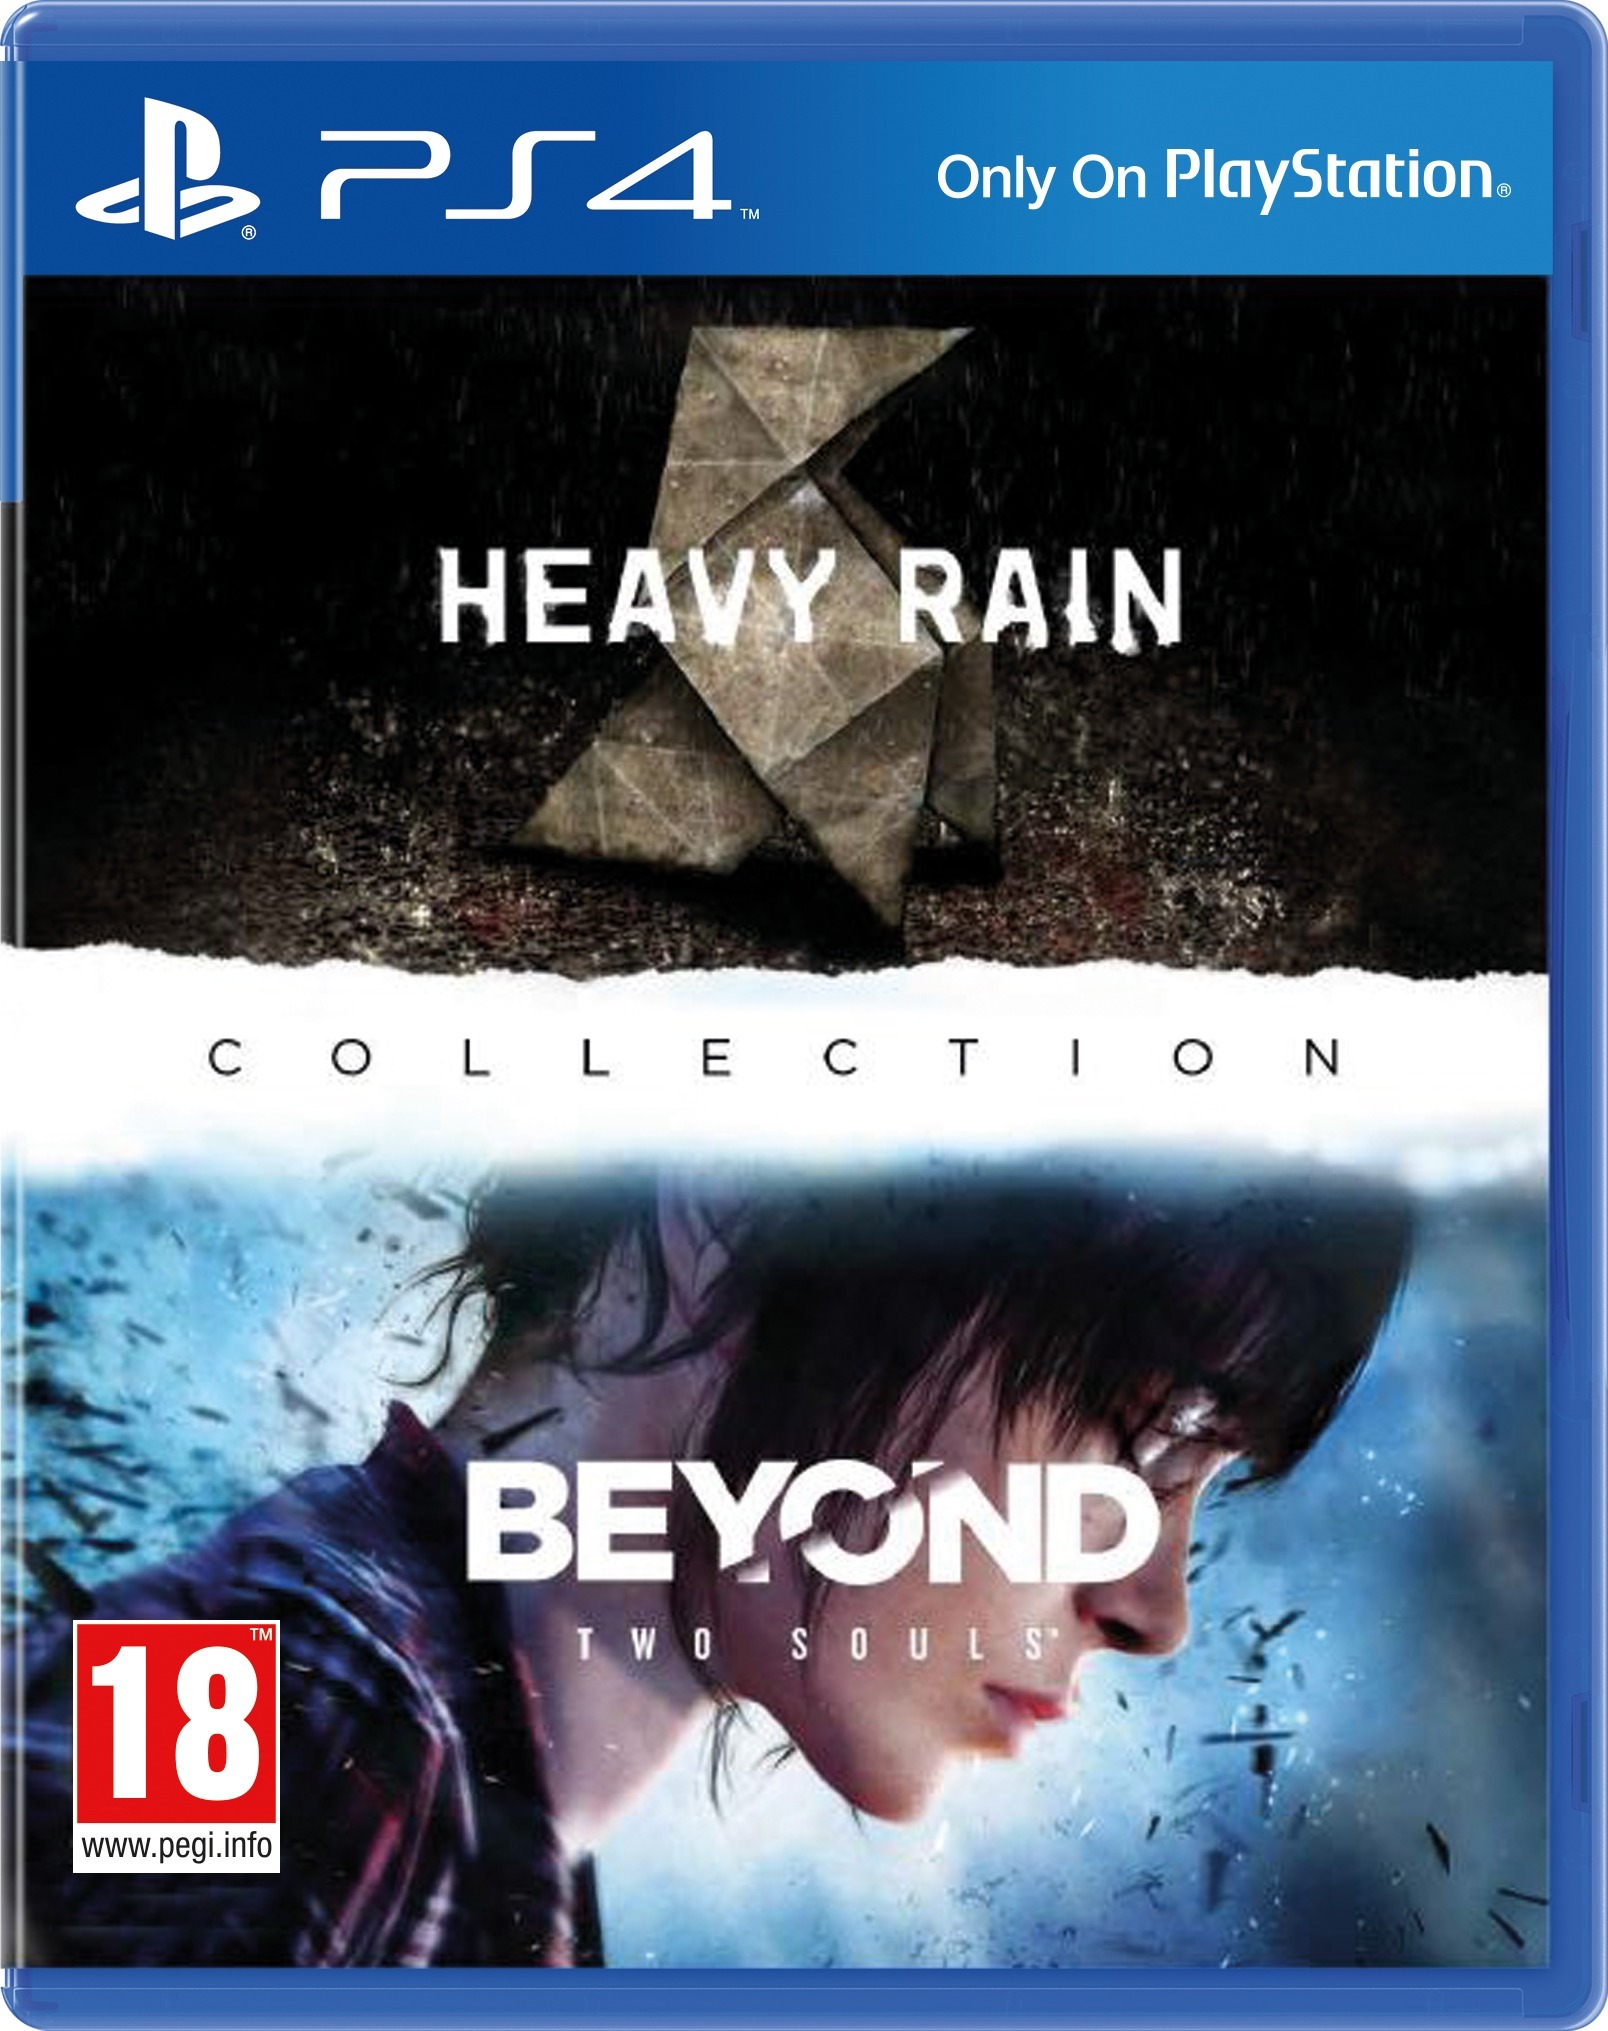 Heavy Rain & Beyond: Two Souls (За гранью: Две души) Collection (Коллекция) (ENG)